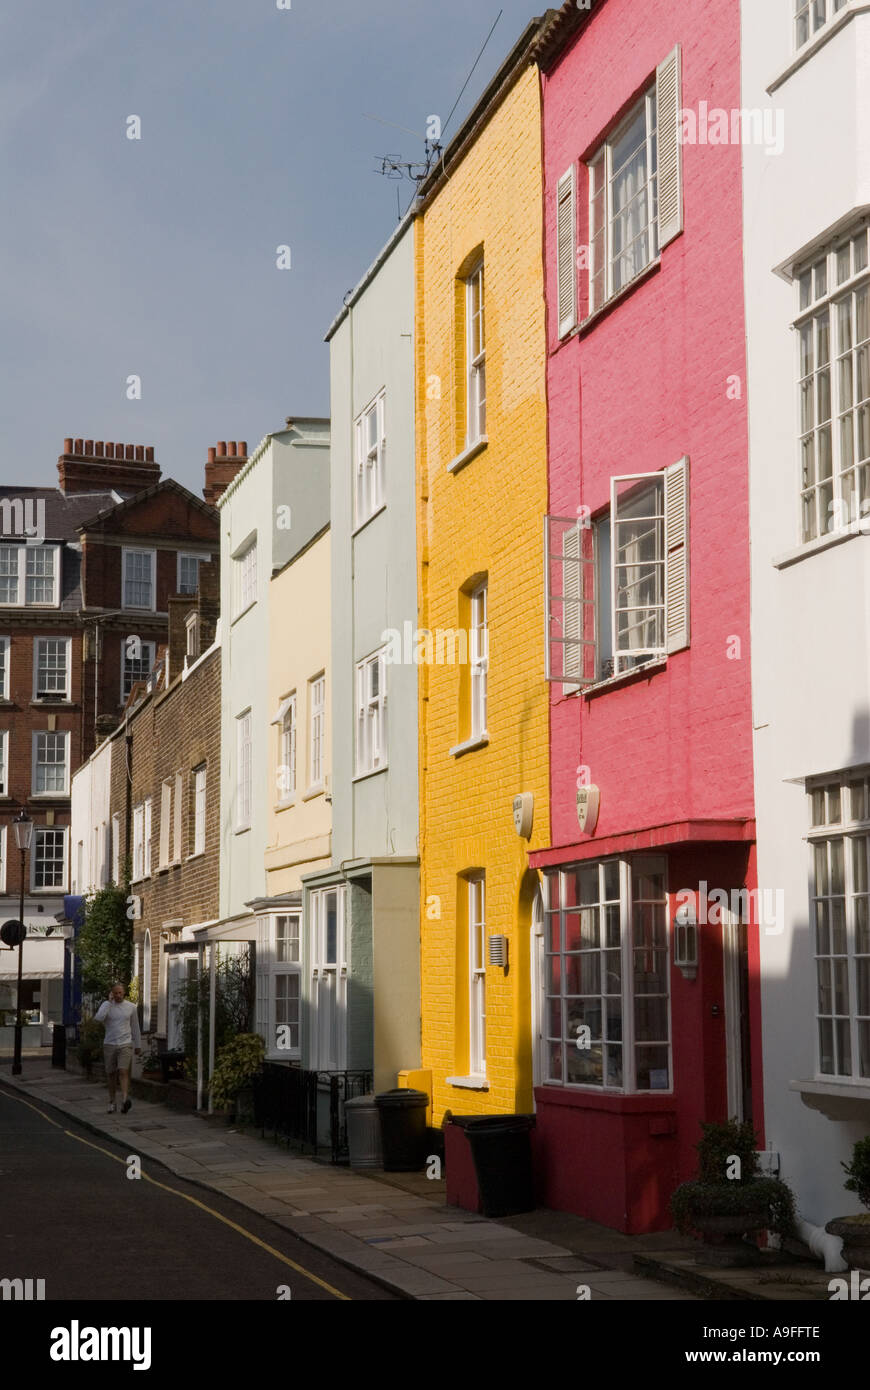 Colourfully painted houses .The Royal Borough of Kensington and  Chelsea. London SW3. England.  HOMER SYKES Stock Photo